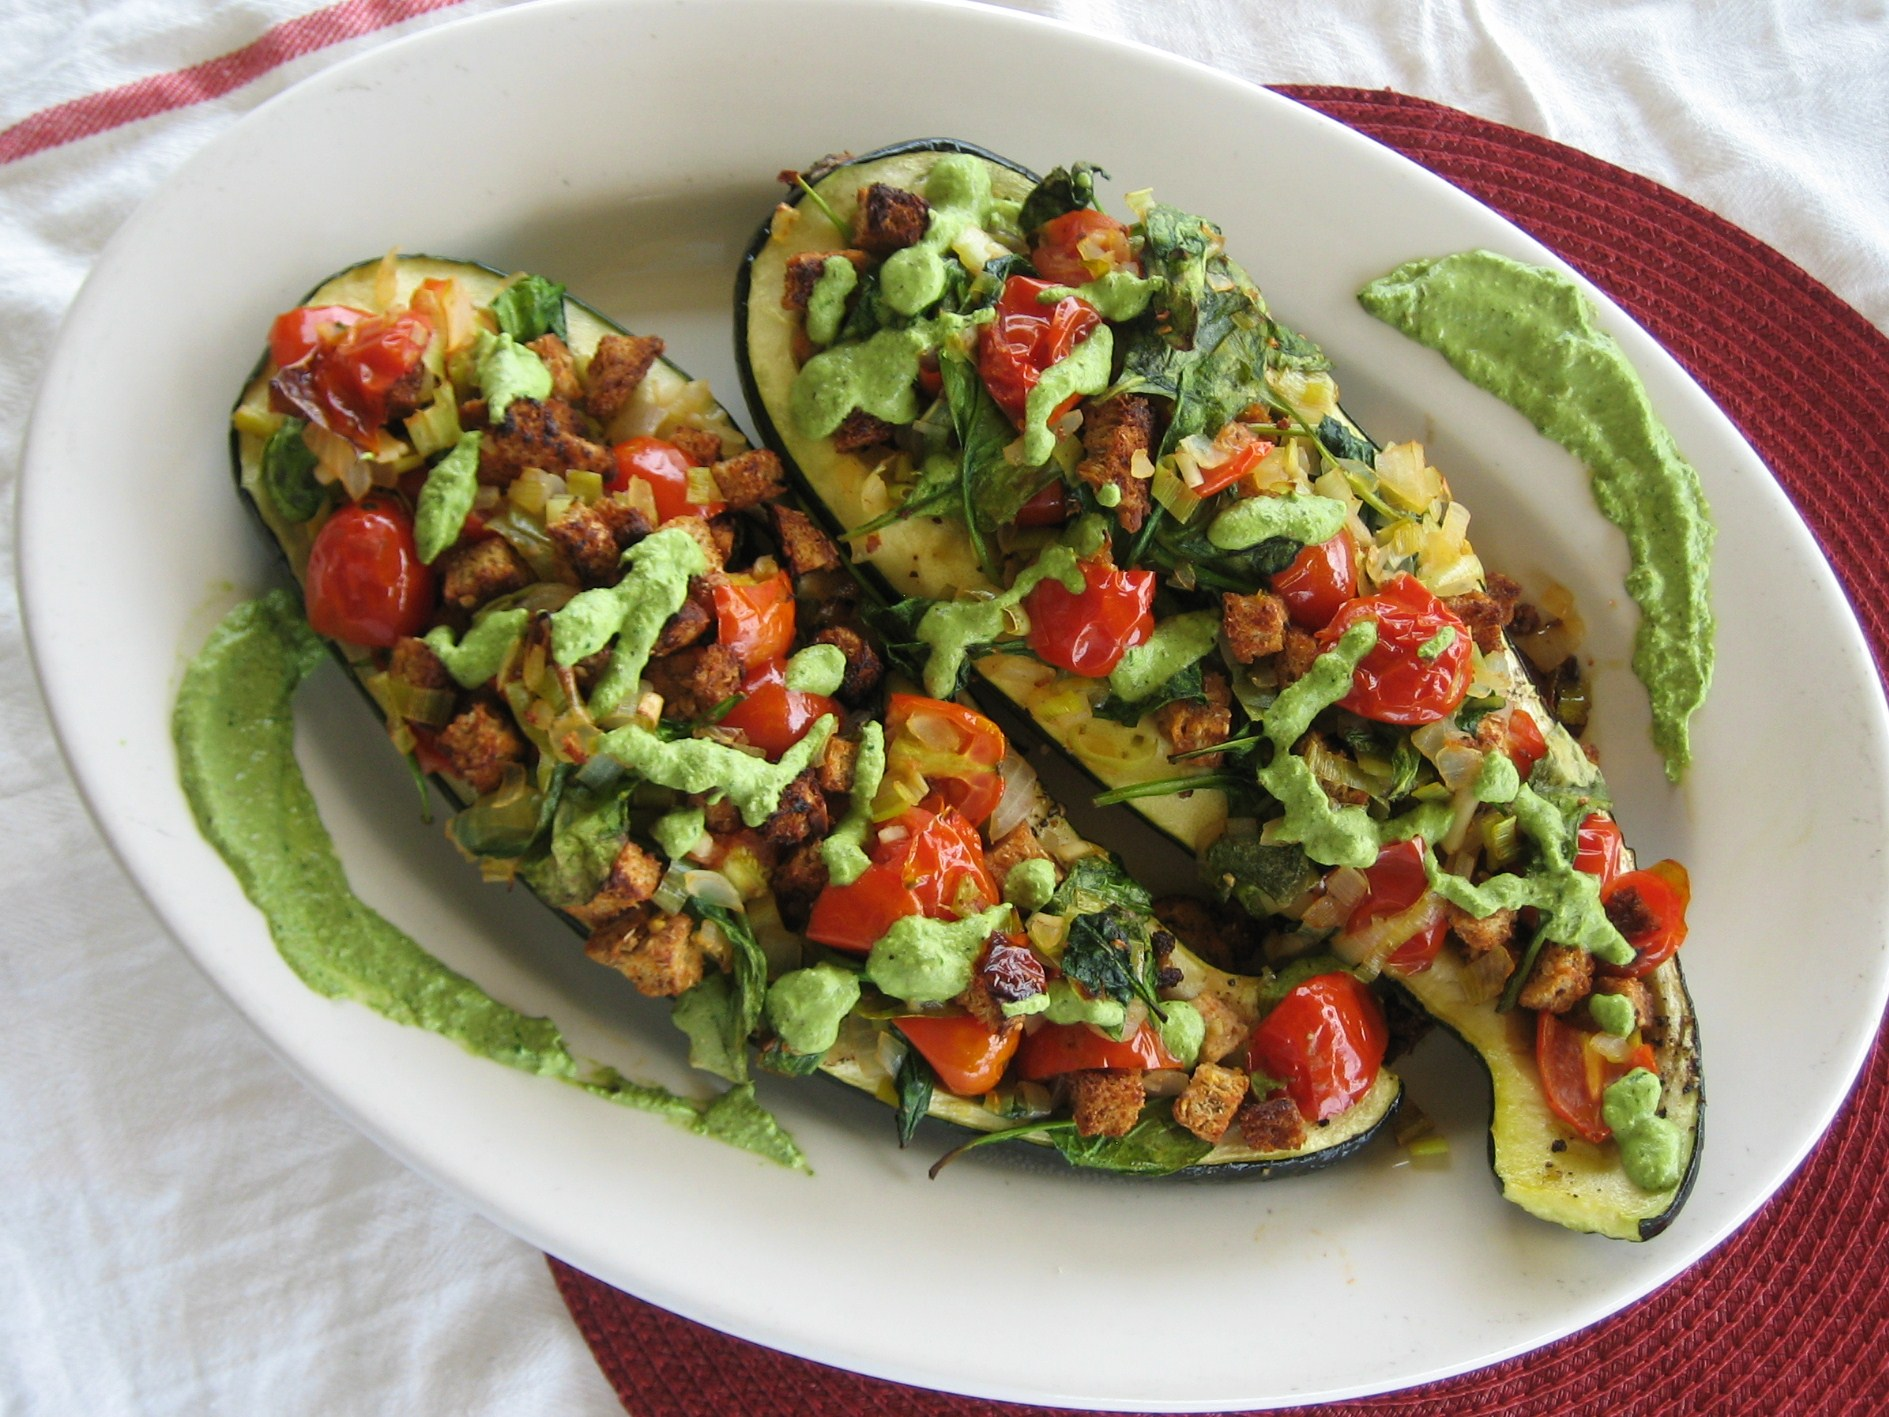 Stuffed Garden Zucchini with Spinach & Walnut Pesto | We Laugh, We Cry ...